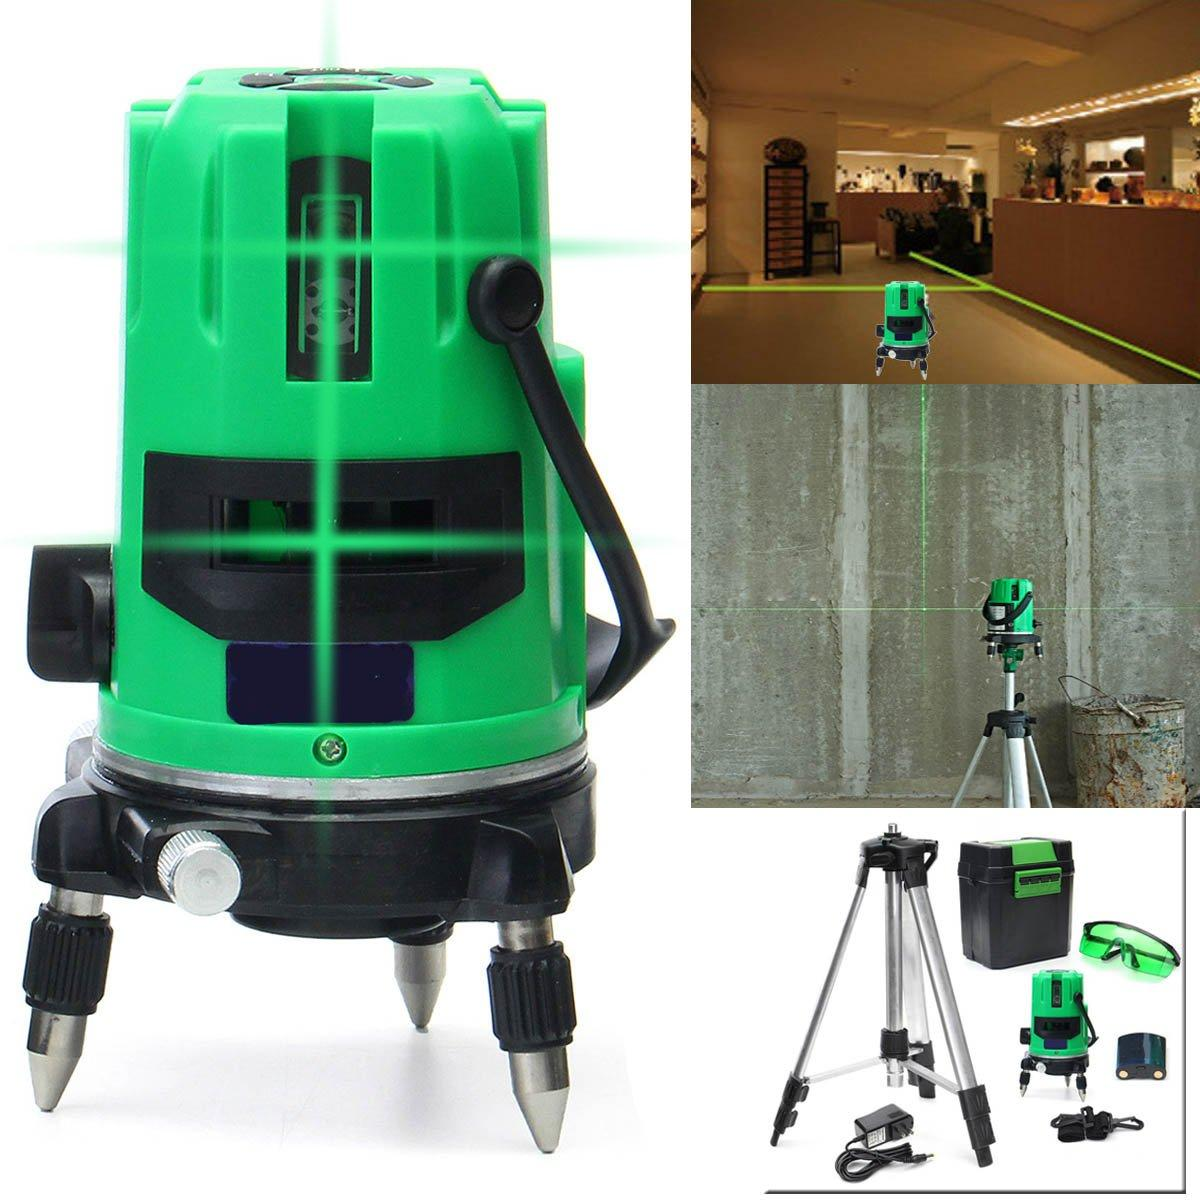 hight resolution of green 5 line 6 points laser level 360 rotary laser line self leveling with tripod cod